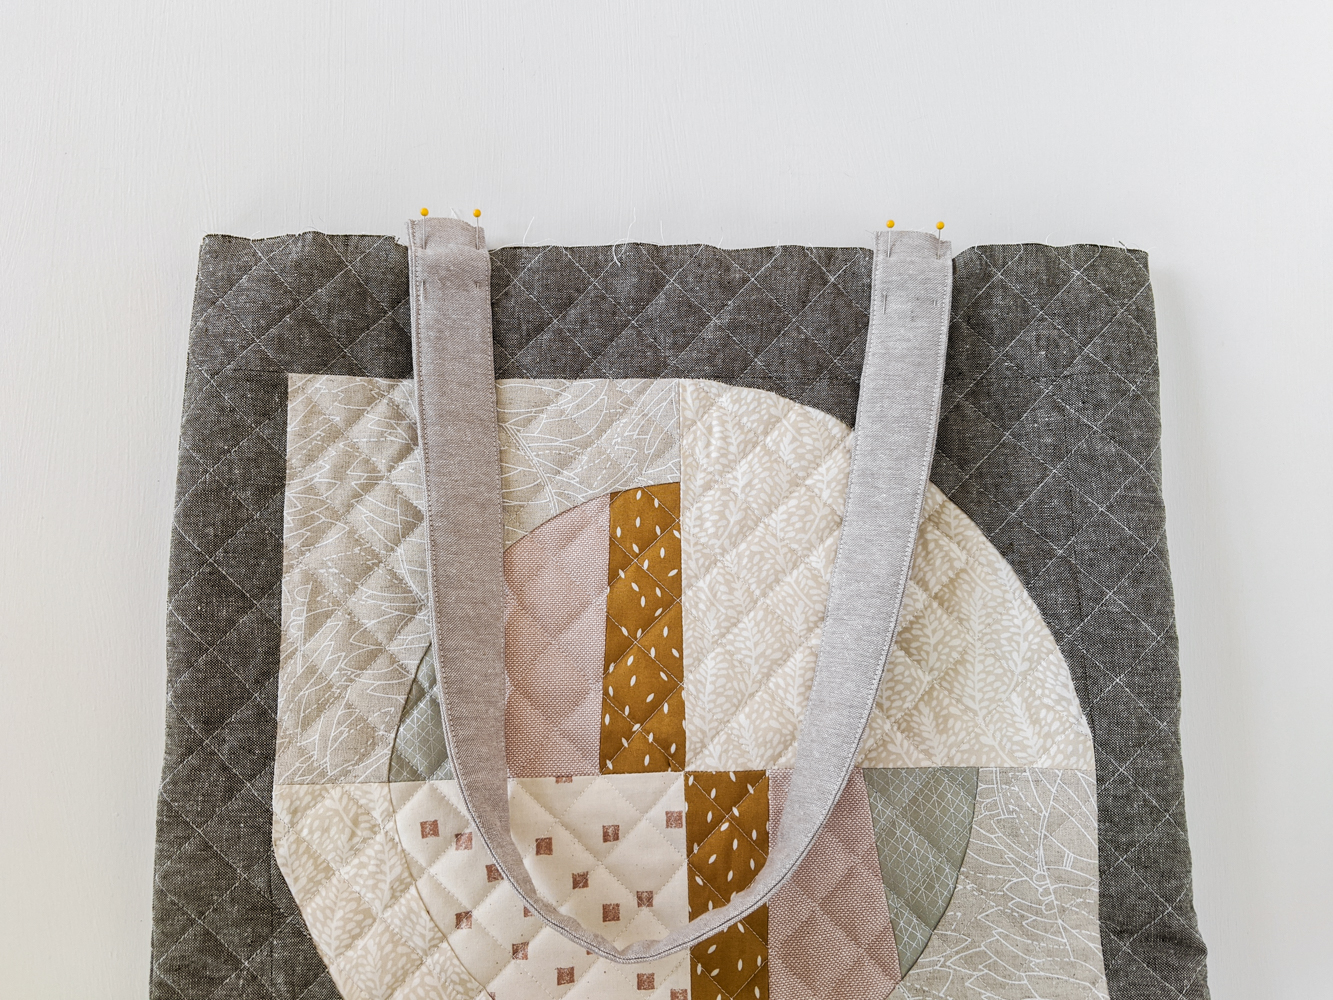 This FREE quilted tote bag tutorial shows step by step how to create a large tote bag using the Modern Fans quilt block pattern. suzyquilts.com #bagtutorial